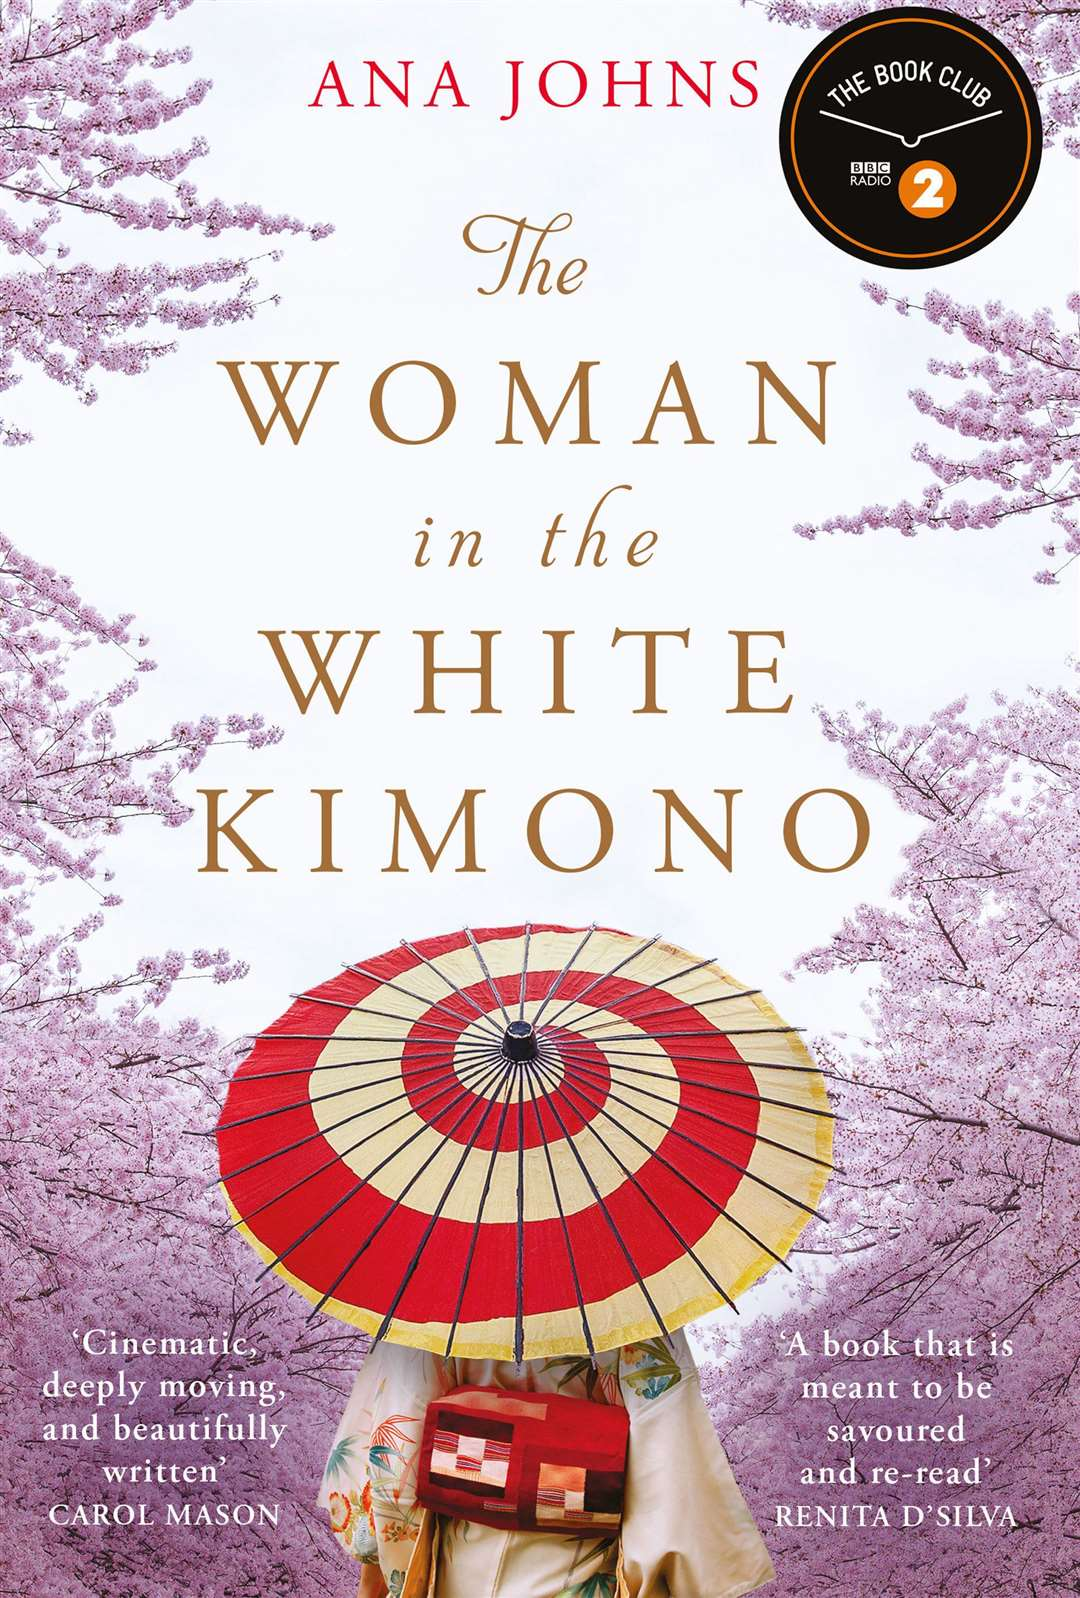 The Woman In The White Kimono by Ana Johns Picture: Legend Press/PA